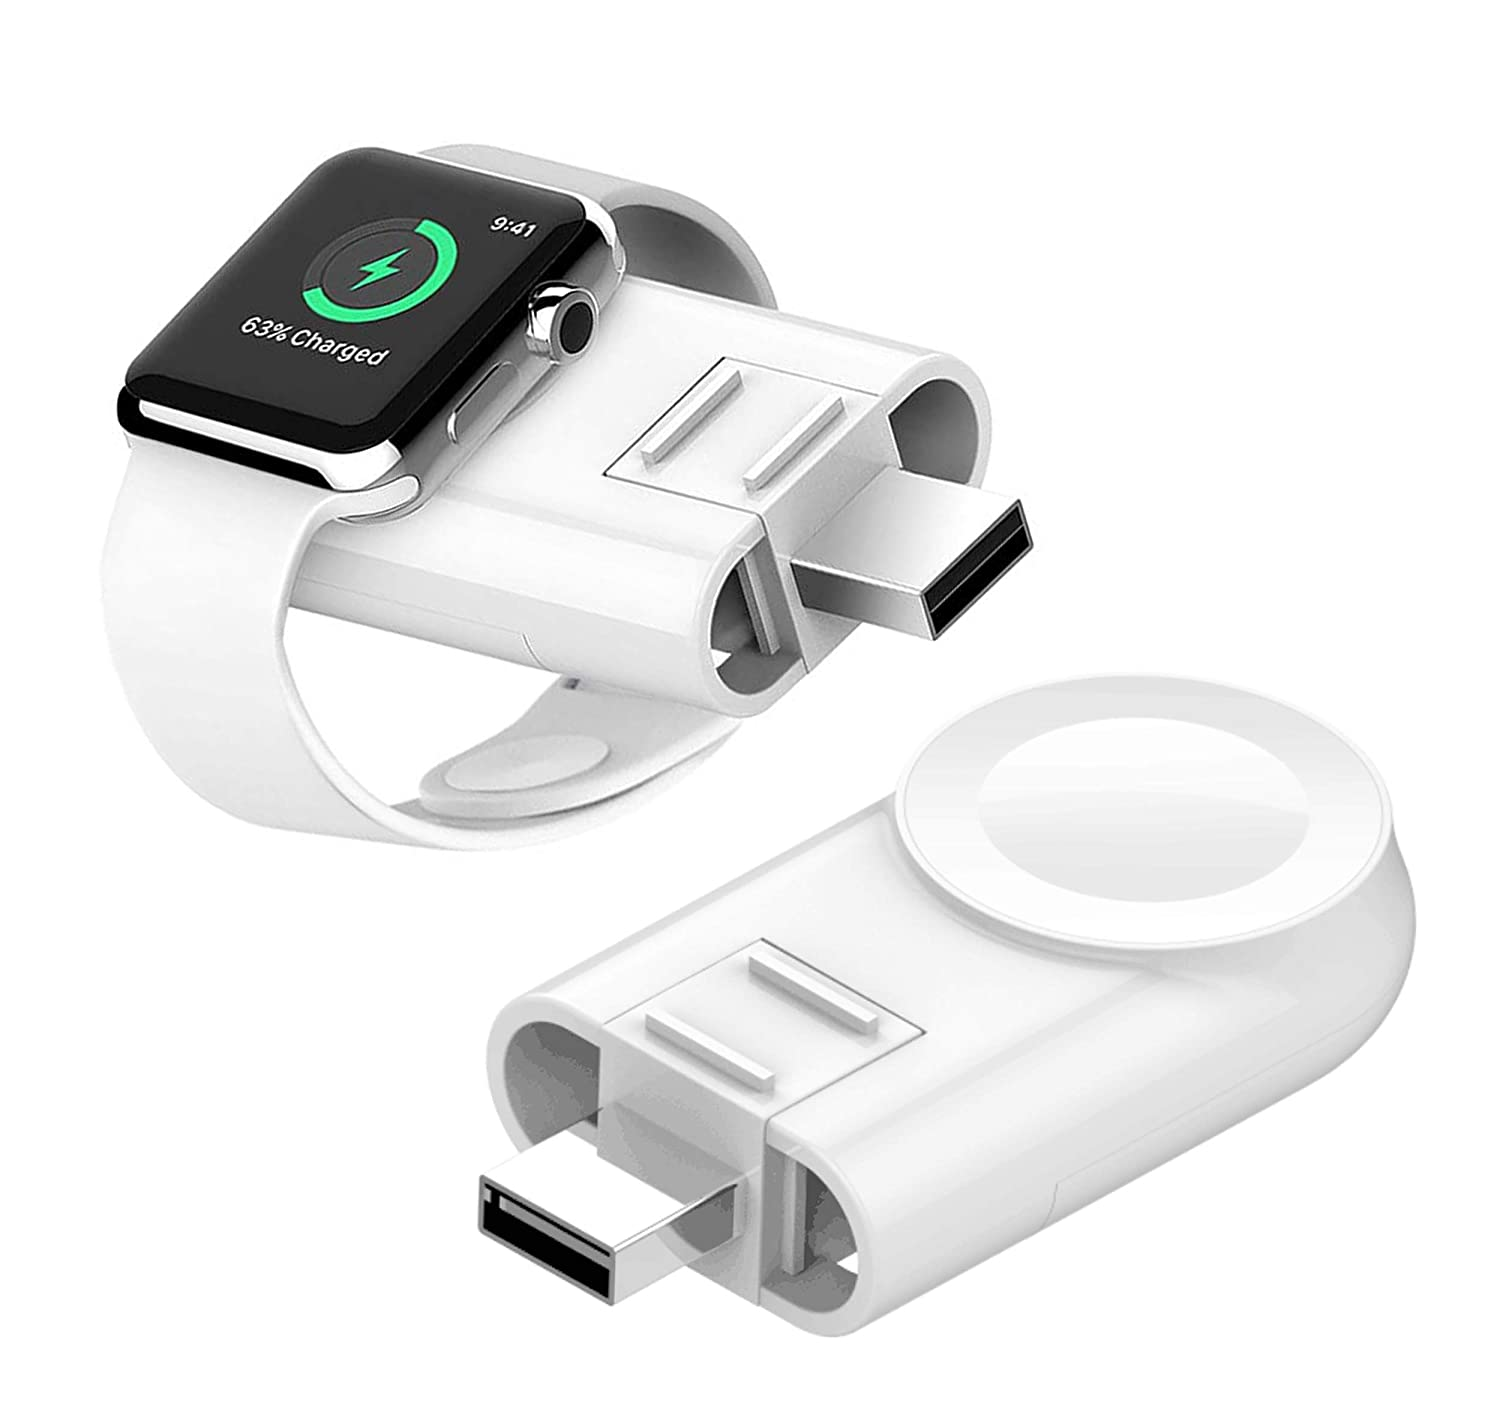 Wireless Watch Charger for Apple Watch,Portable USB Magnetic iWatch Charger Compatible with Apple Watch Series 4 3 2 1